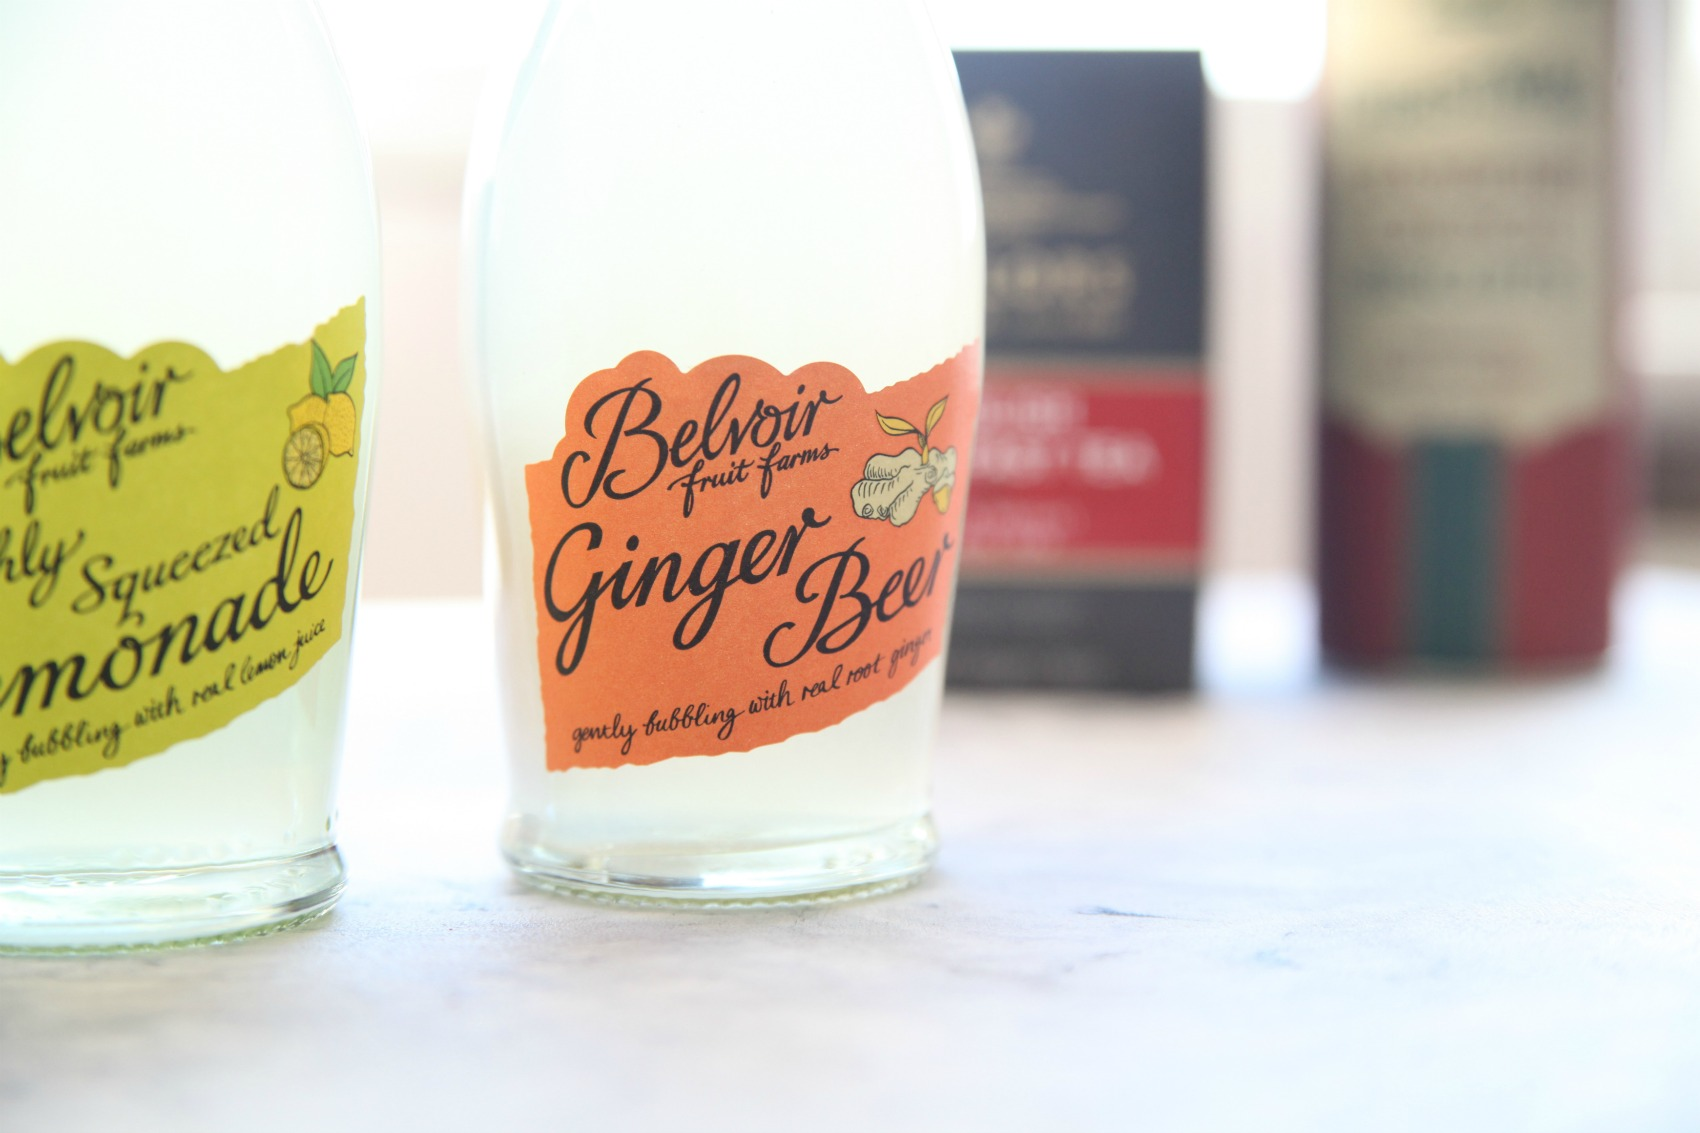 Belvoir Fruit Farms drinks in the Jingle All the Way from Prestige Hampers